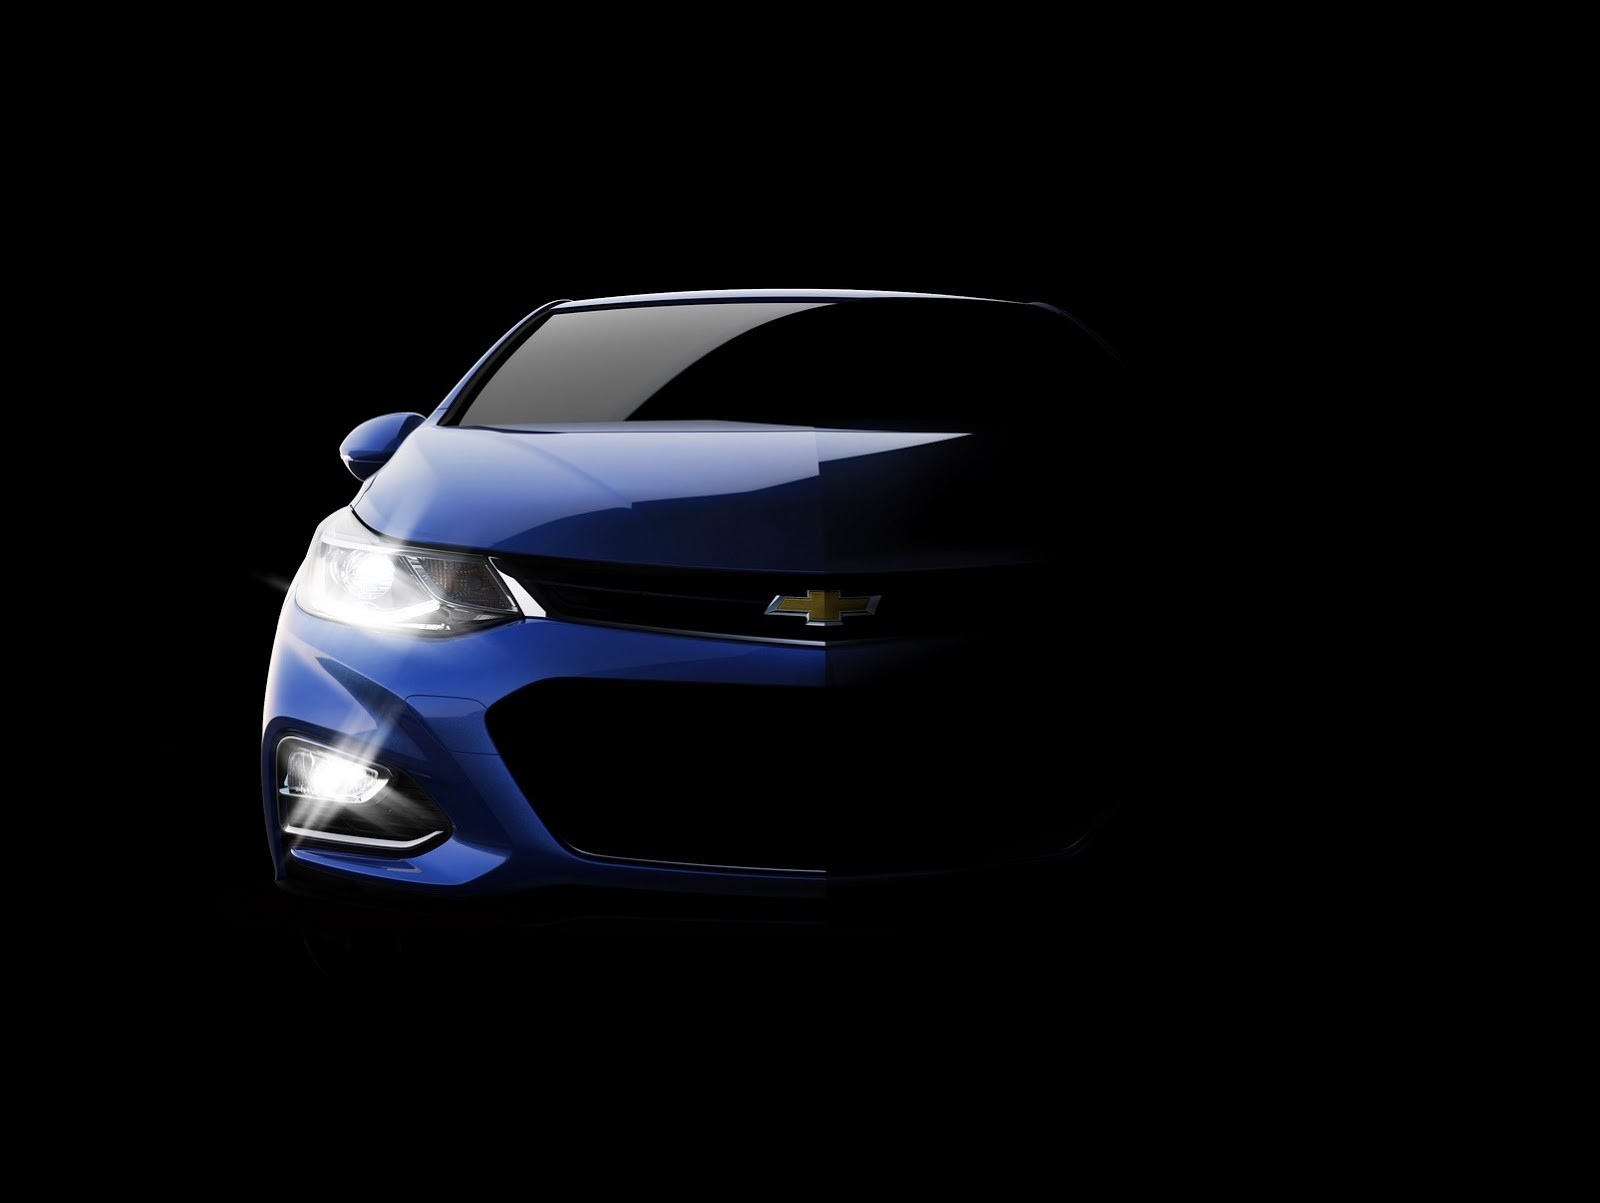 2016 Chevrolet Cruze Fuel Economy Teased: More Than 35 MPG ...